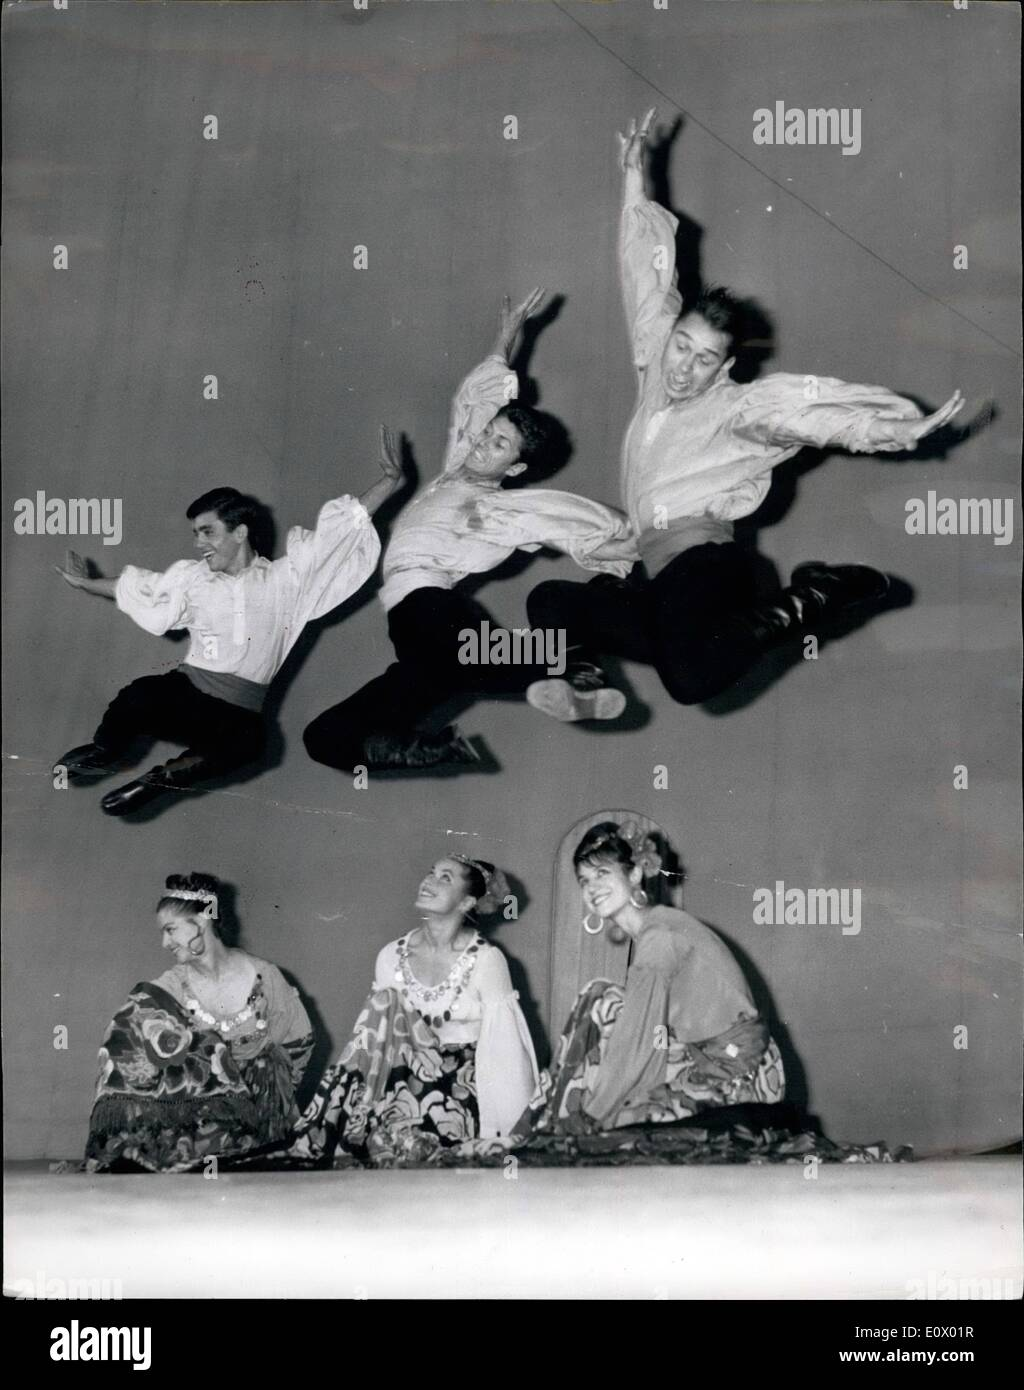 Sep. 09, 1964 - MOSCOW DANCE COMPANY REHEARSES IN LONDON, THE BESSARABIAN GIPSY DANCE.. Members of the MOISEYEV DANCE COMPANY of 150 artistes - were to be seen rehearsing this afternoon at the Royal Albert Hall for the opening there this evening of their London Season. Their programme includes a 'take-off' of ''The Beatles'' - and a Football match. KEYSTONE PHOTO SHOWS:- Scene during the BESSARABIAN GIPSY DANCE - at the Royal Albert Hall today. - Stock Image